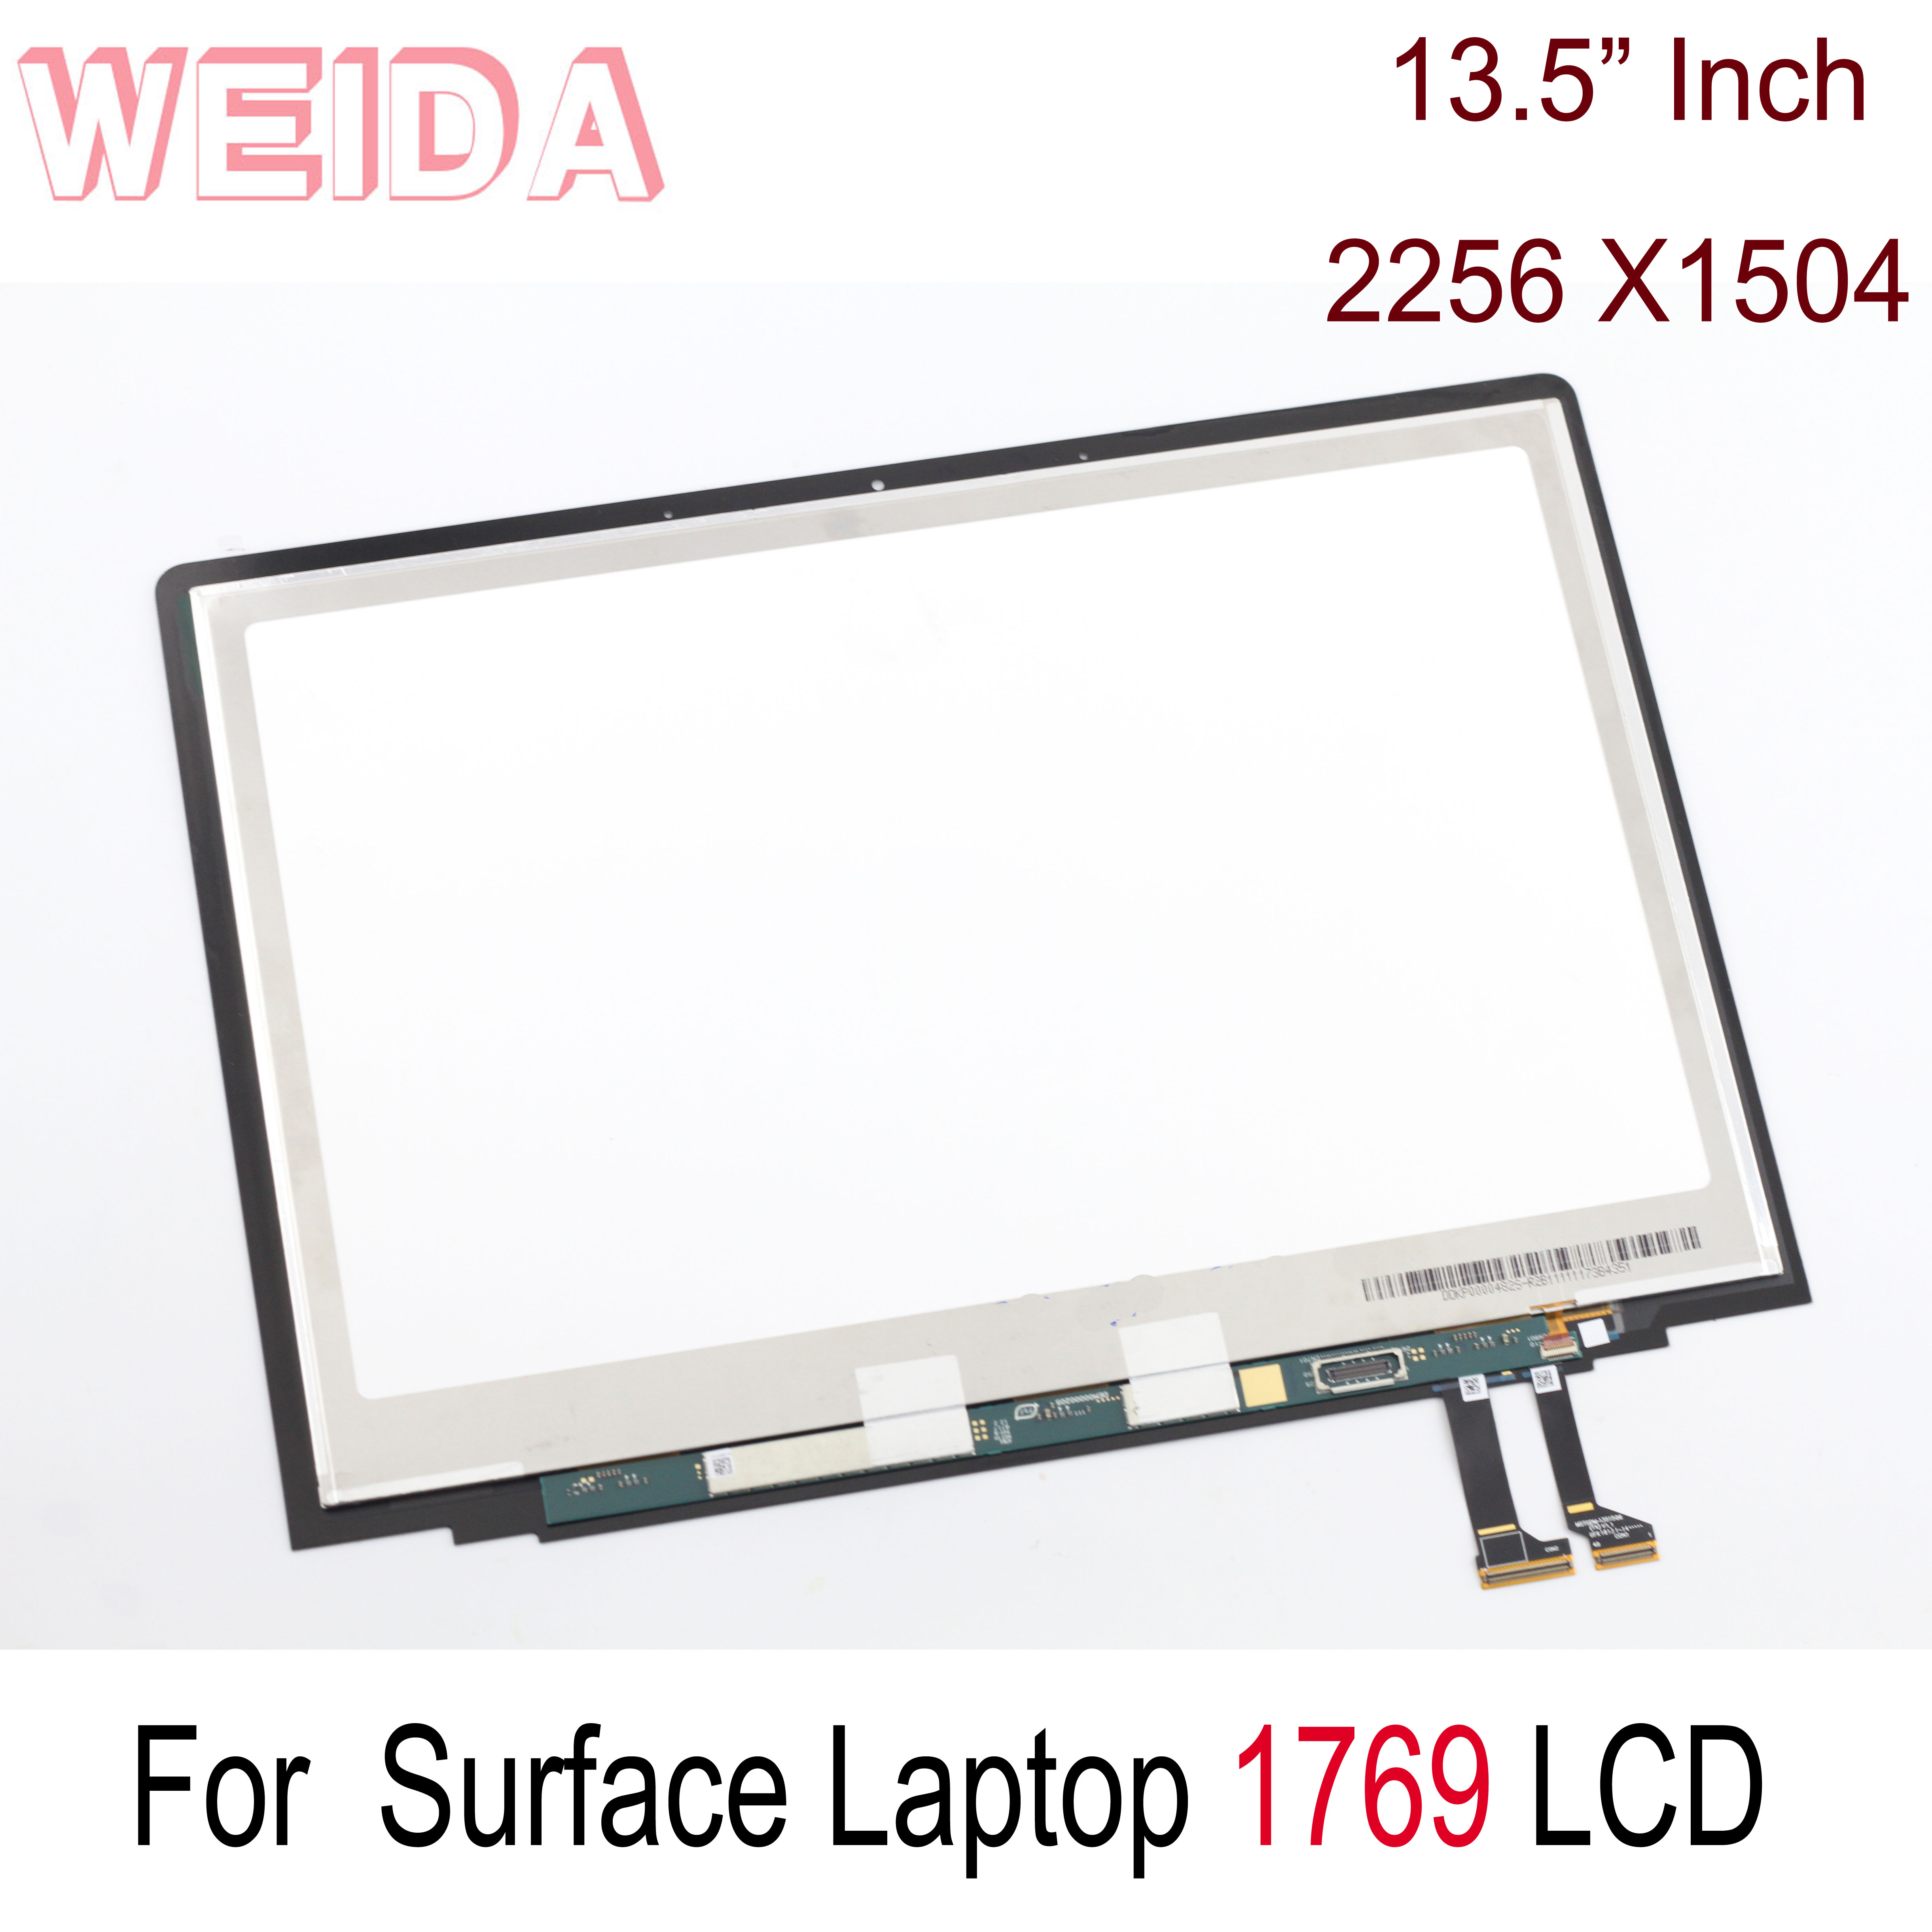 WEIDA LCD Replacment For Microsoft Surface Laptop 1769 LCD Display Touch Screen Assembly 13.5